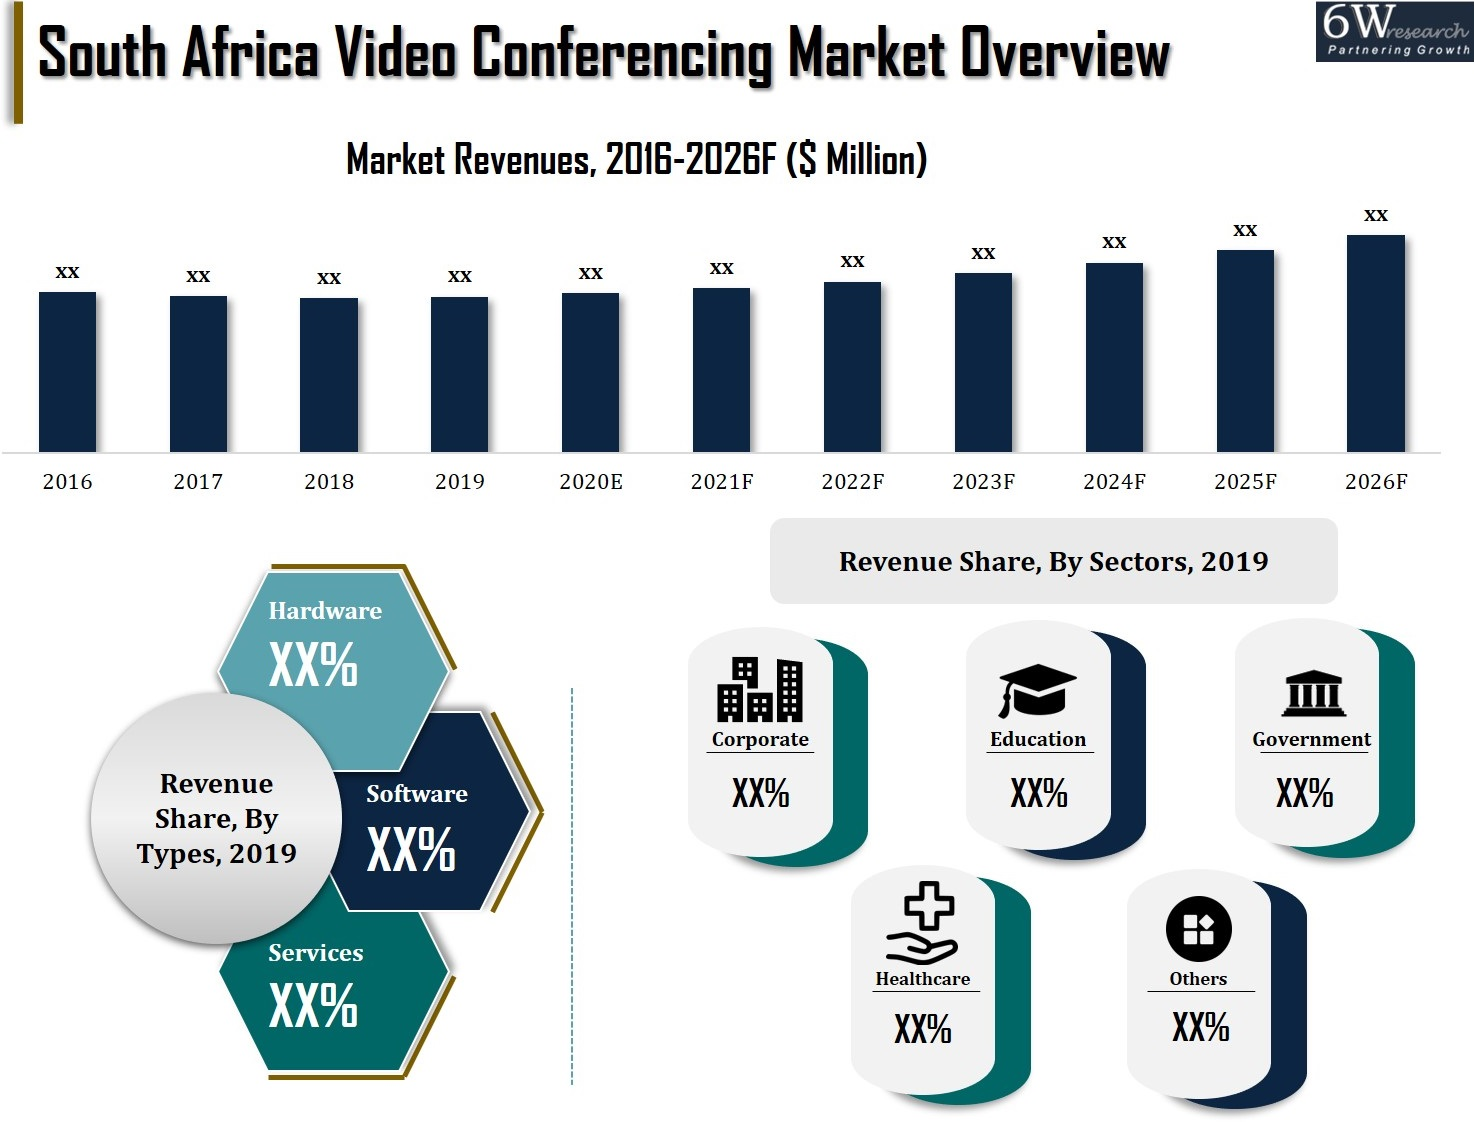 South Africa Video Conferencing Market